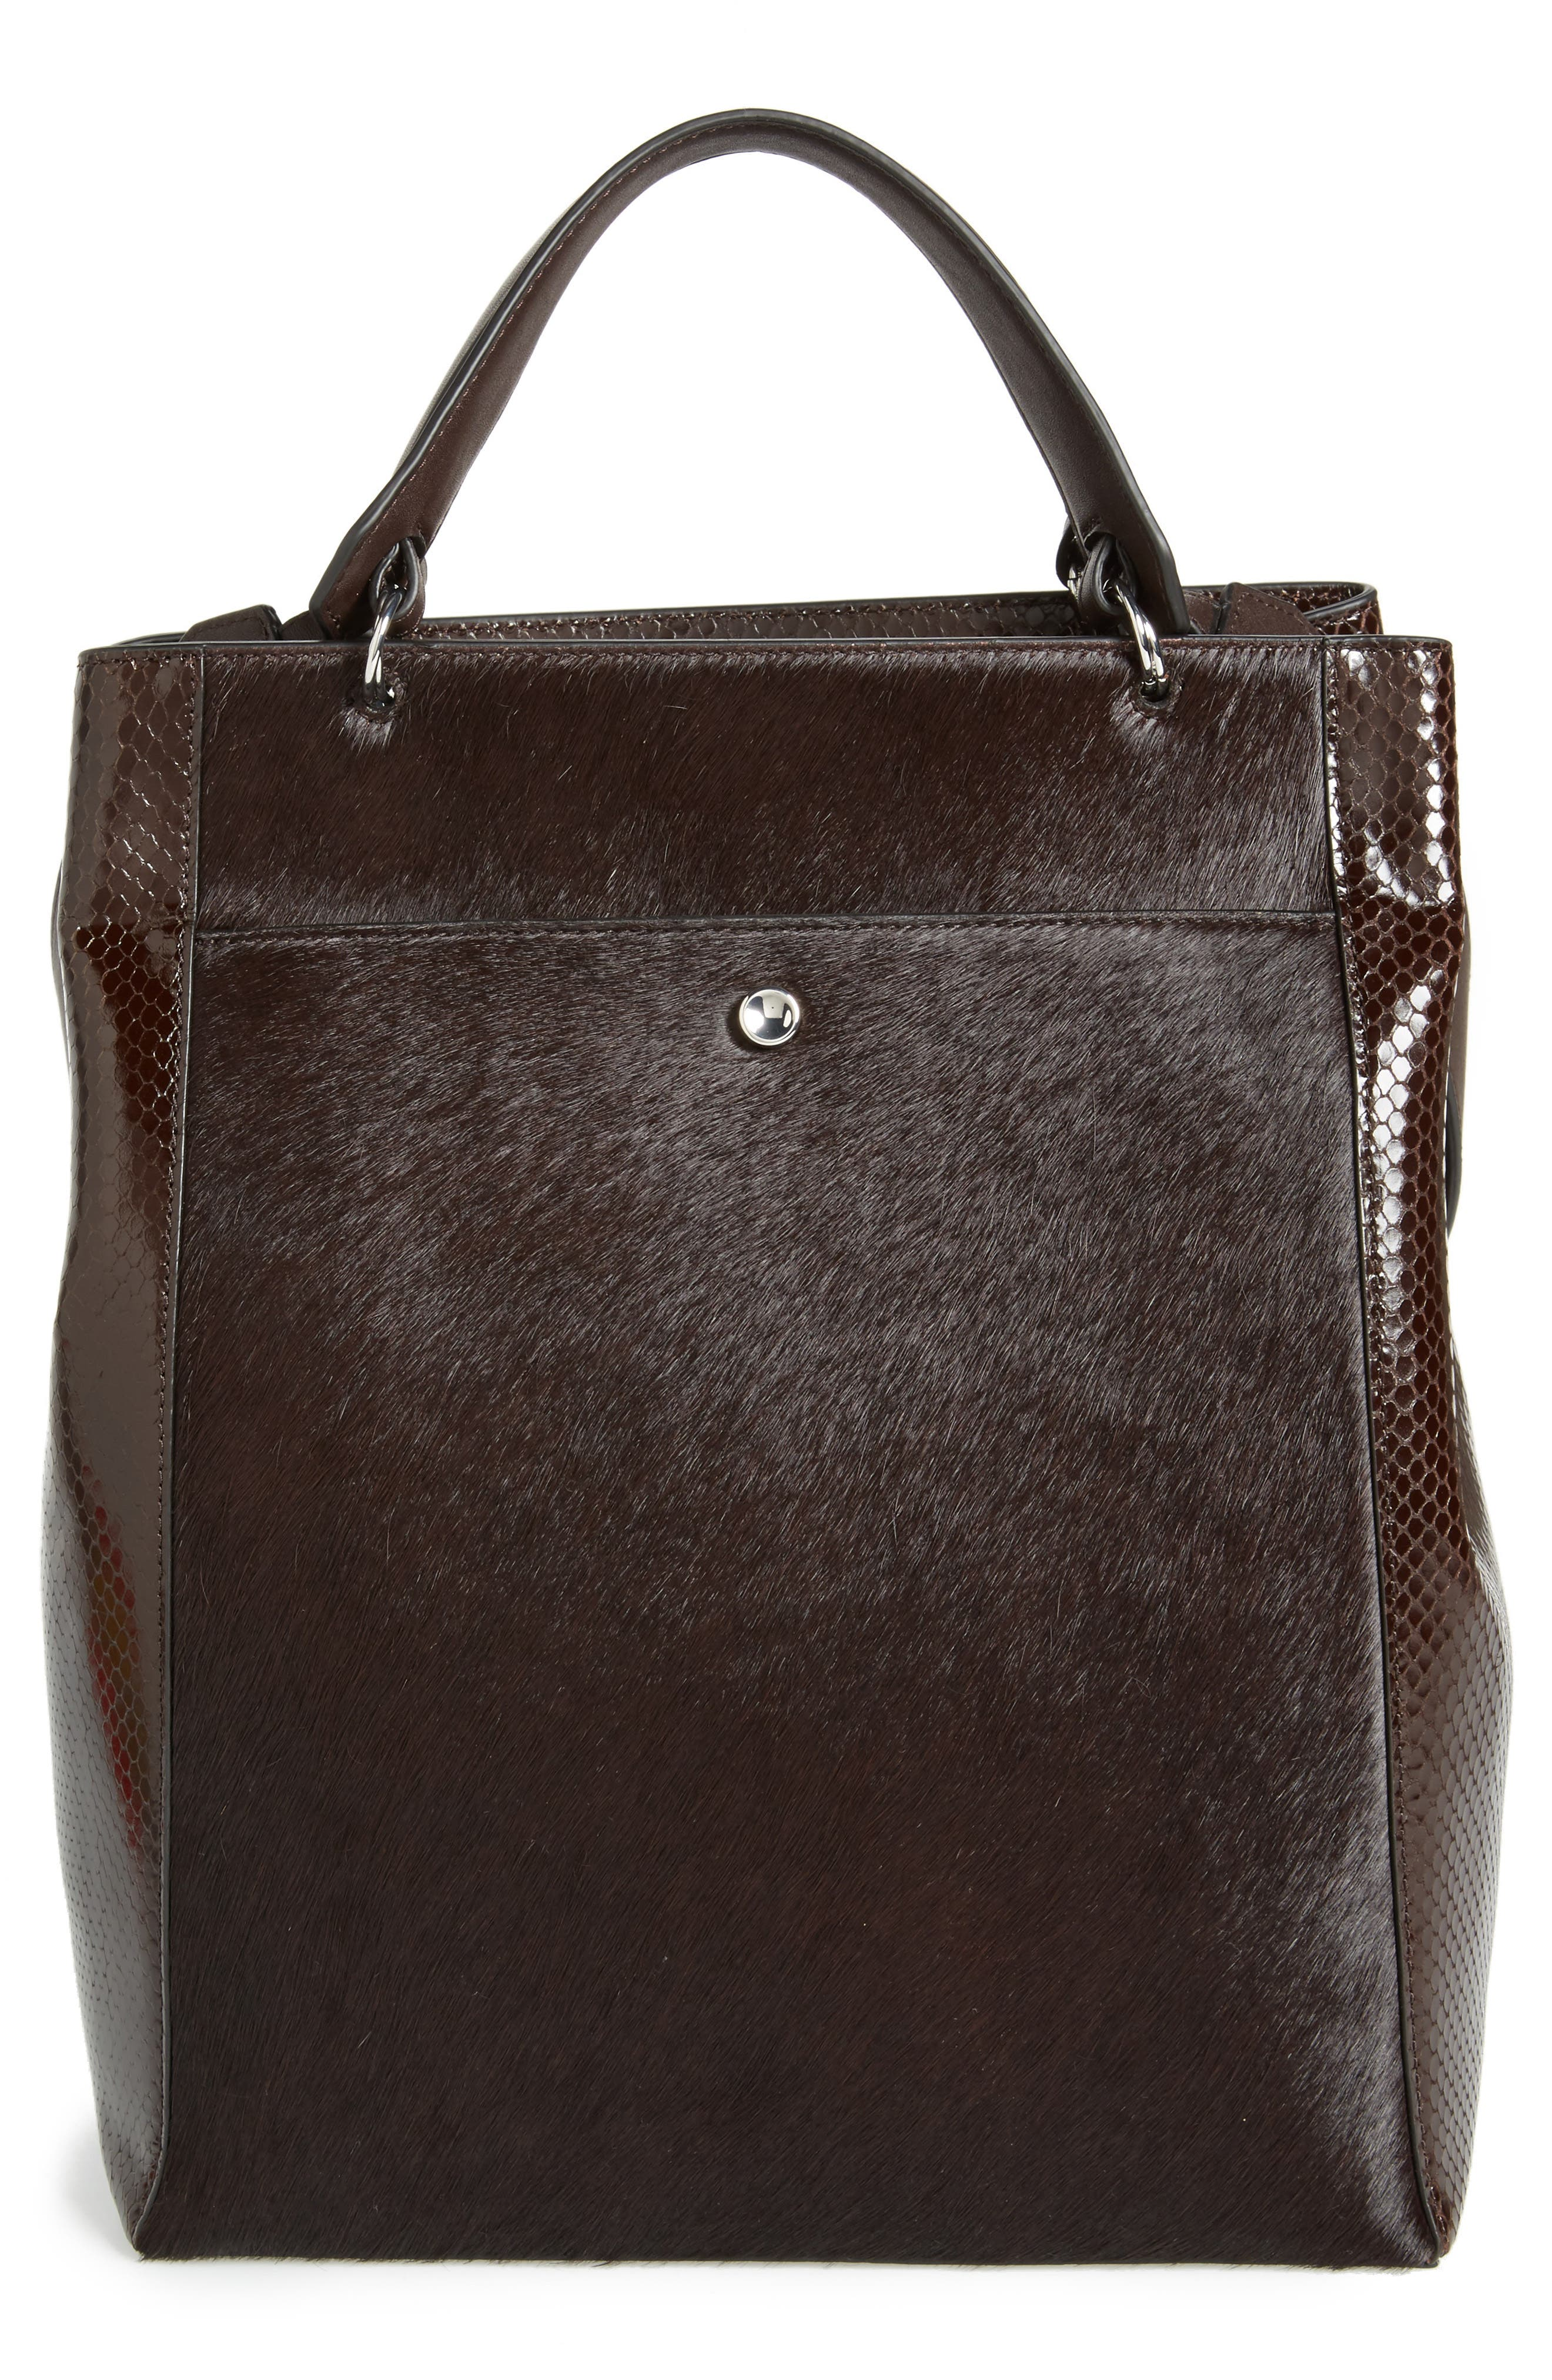 ELIZABETH AND JAMES Large Eloise Genuine Calf Hair & Leather Tote